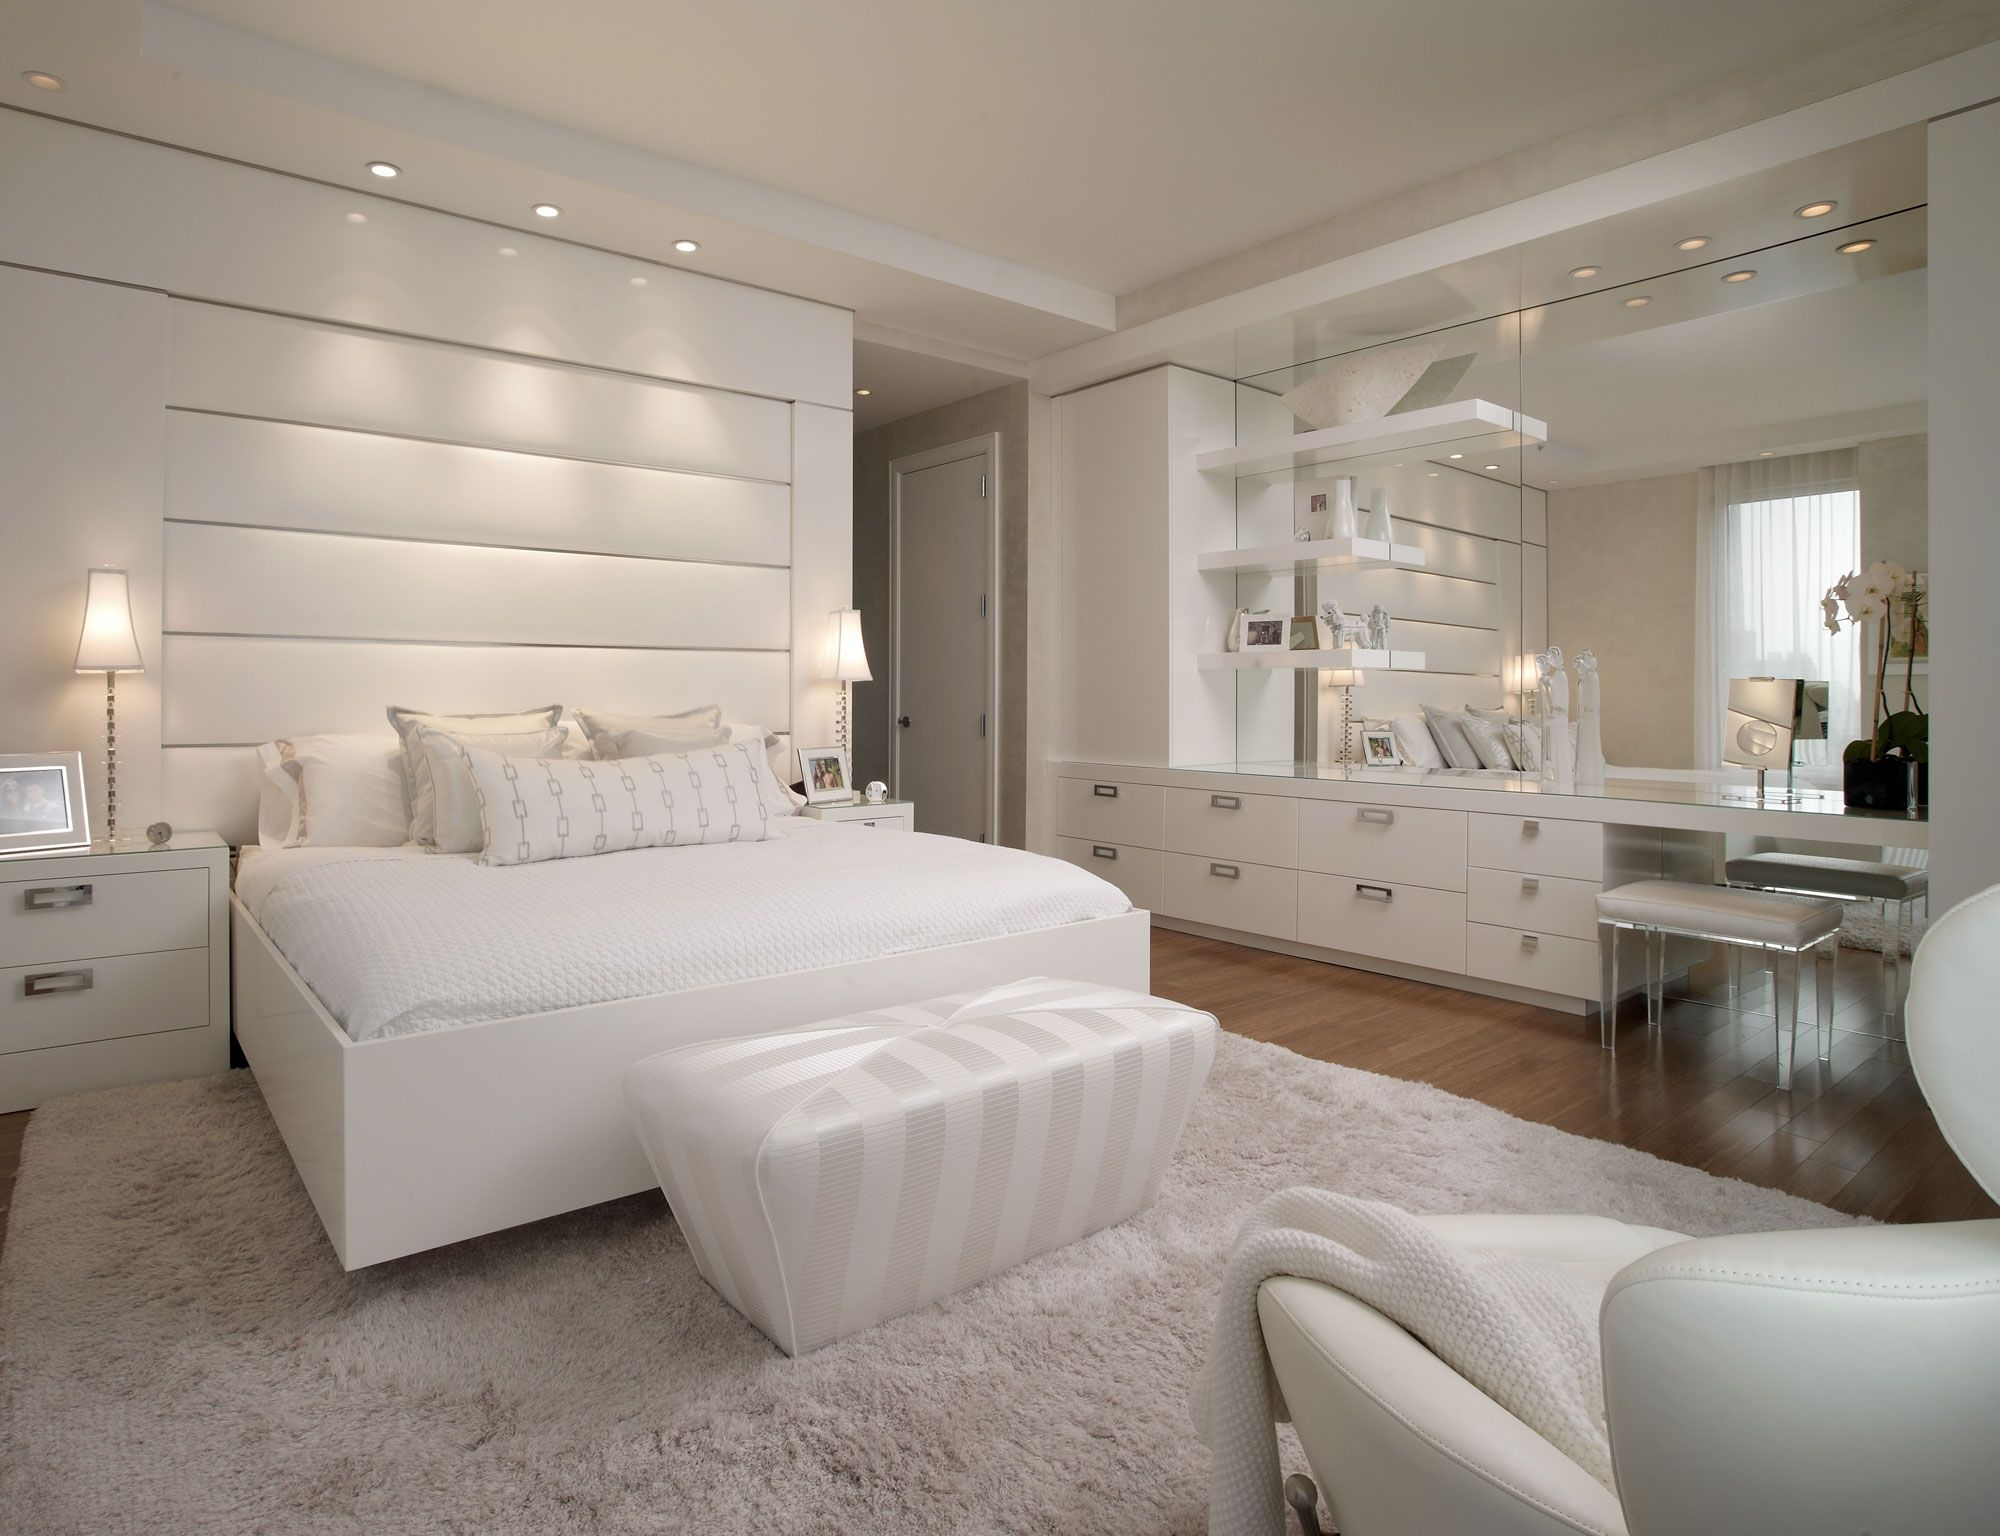 Luxury all white bedroom decorating ideas amazing for All modern decor